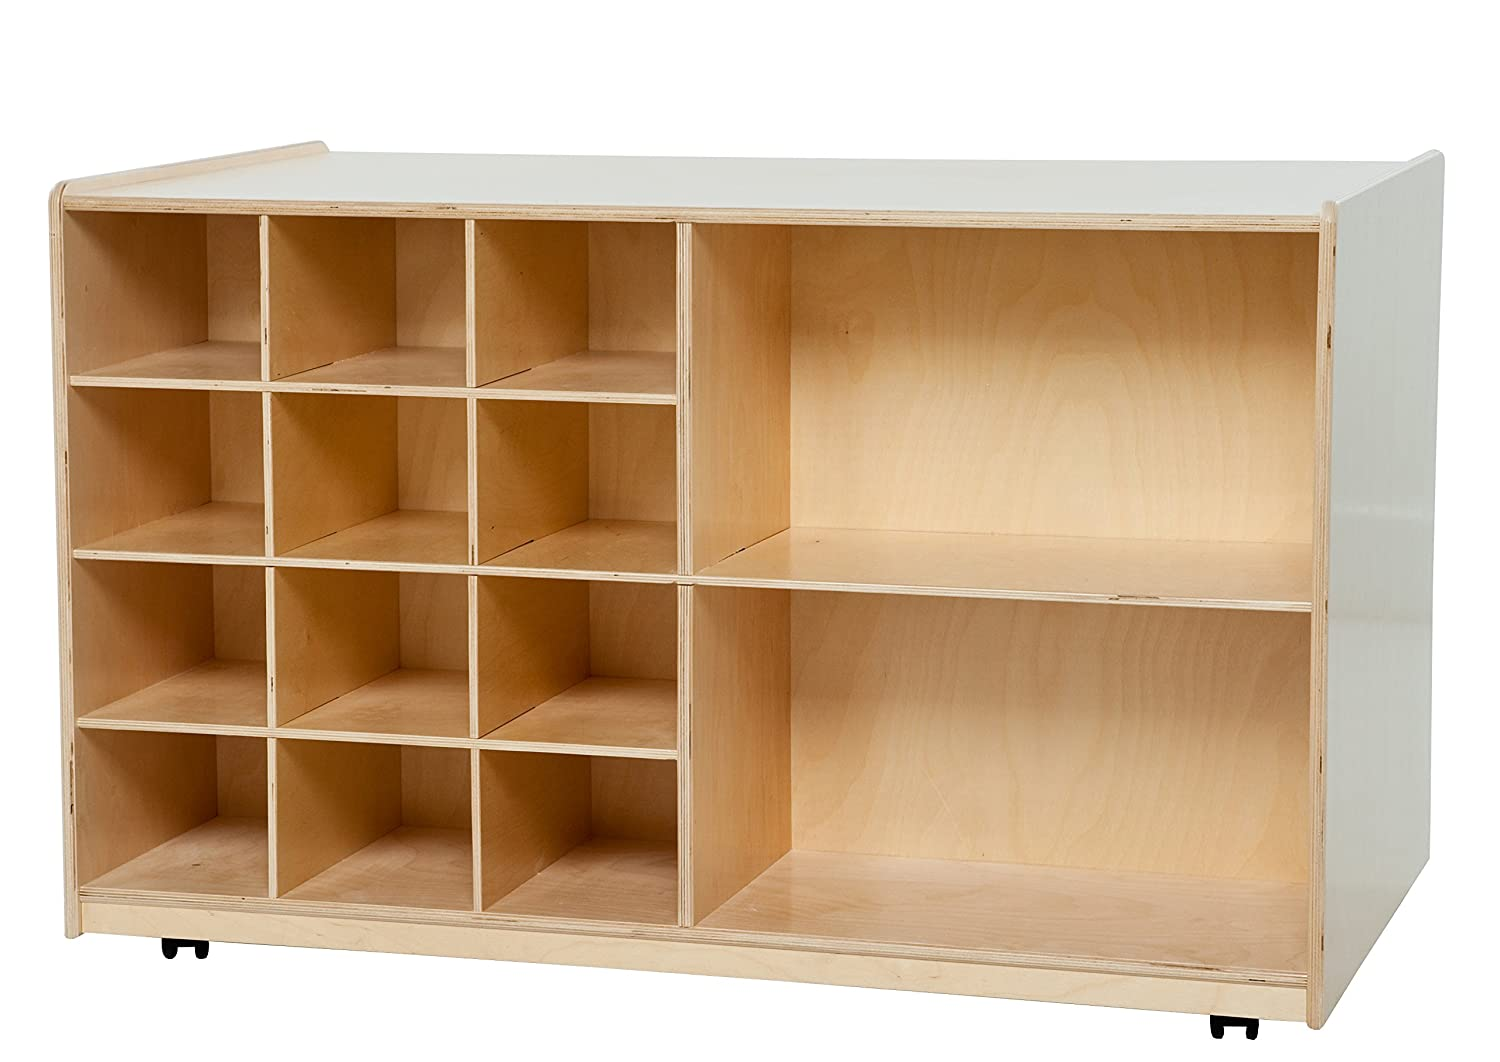 Wood Designs Wd16509 Shelving Storage Without Trays 30 X